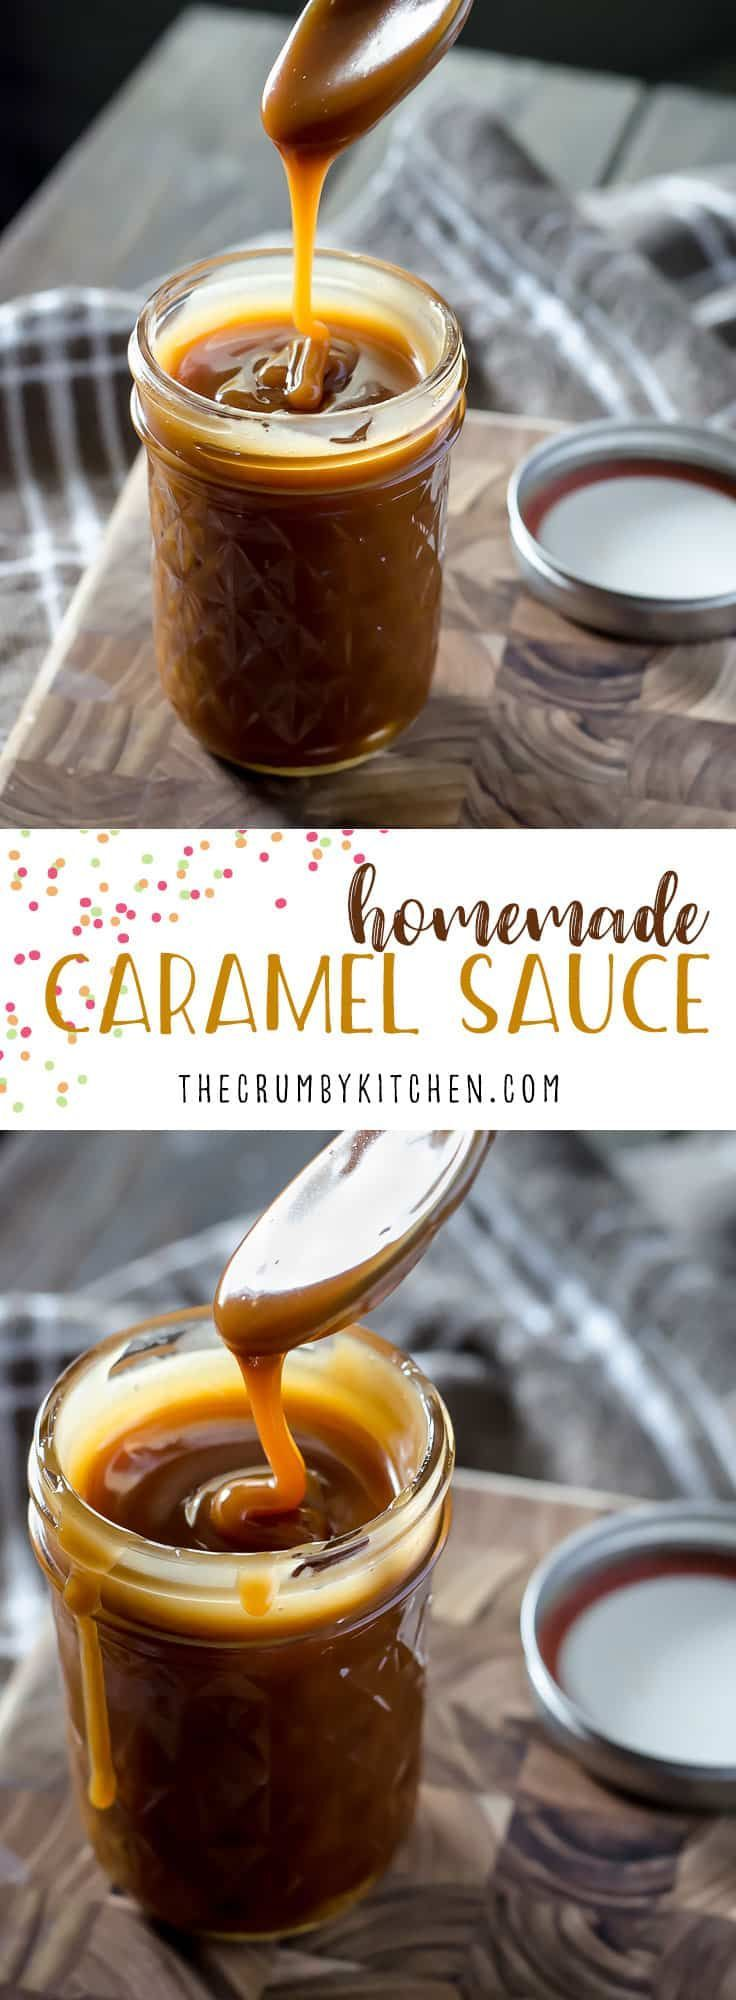 Ditch the store-bought jar!Homemade Caramel Sauce can be yours to drizzle over whatever you please in about 20 minutes with only 3 ingredients! #homemade #diy #caramel #sauce #dessert #recipe